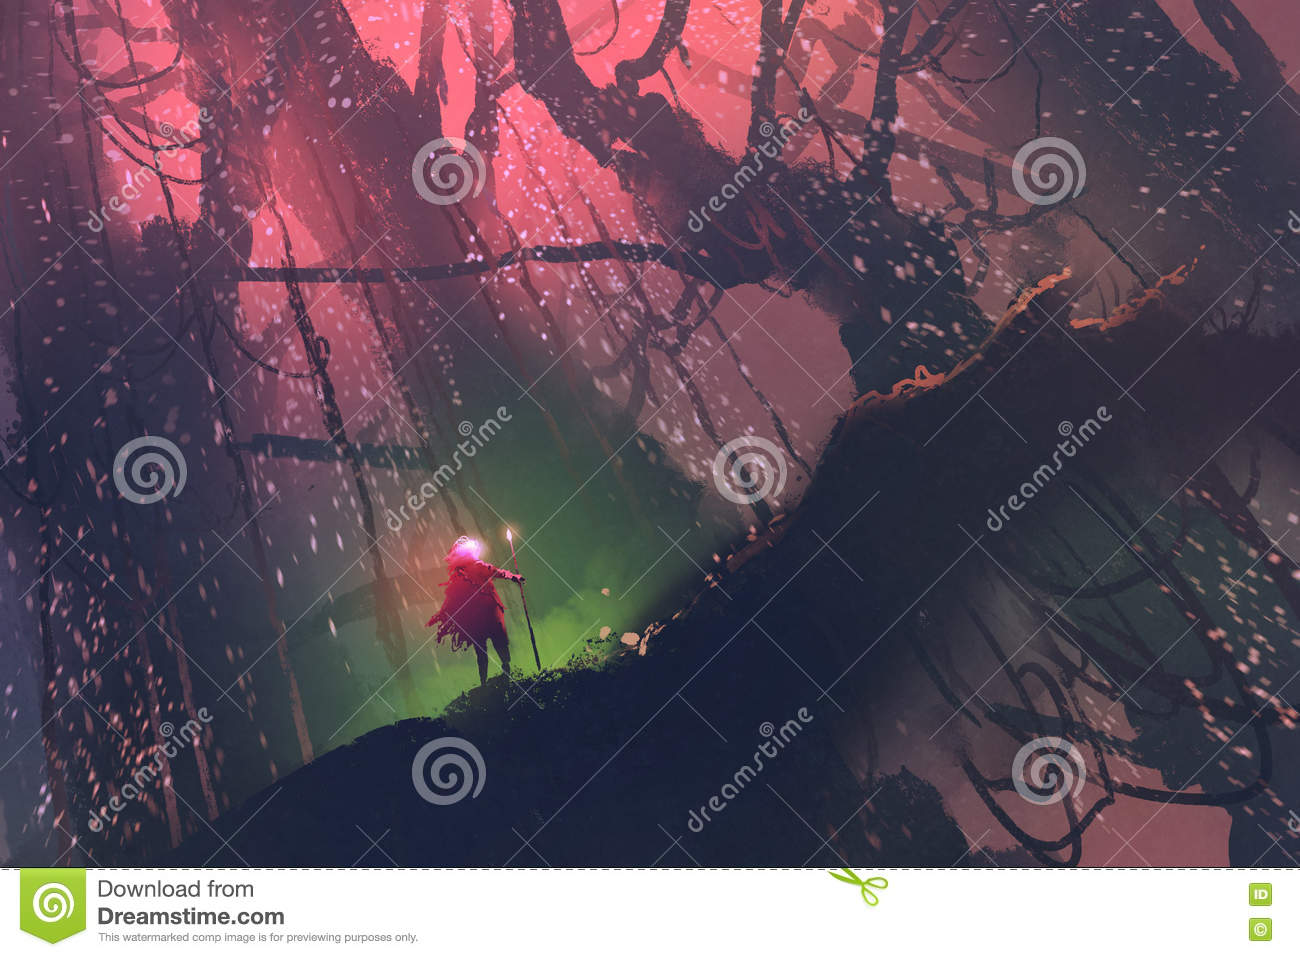 Man with magic pole walking on giant tree in enchanted forest